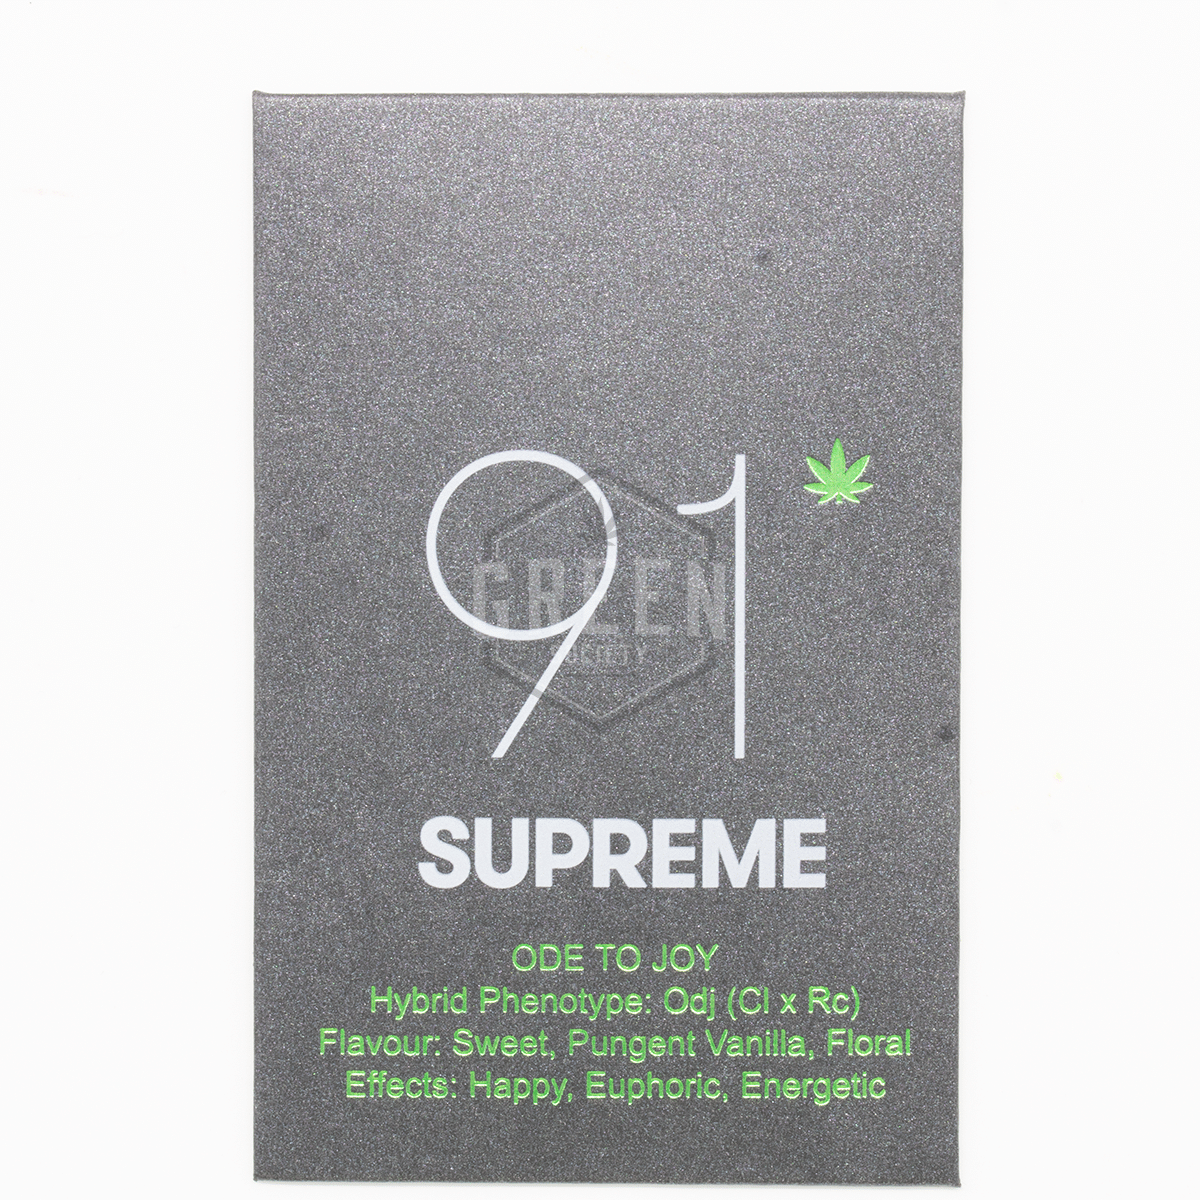 Ode to Joy Shatter by 91 Supreme by Green Society - Image © 2018 Green Society. All Rights Reserved.